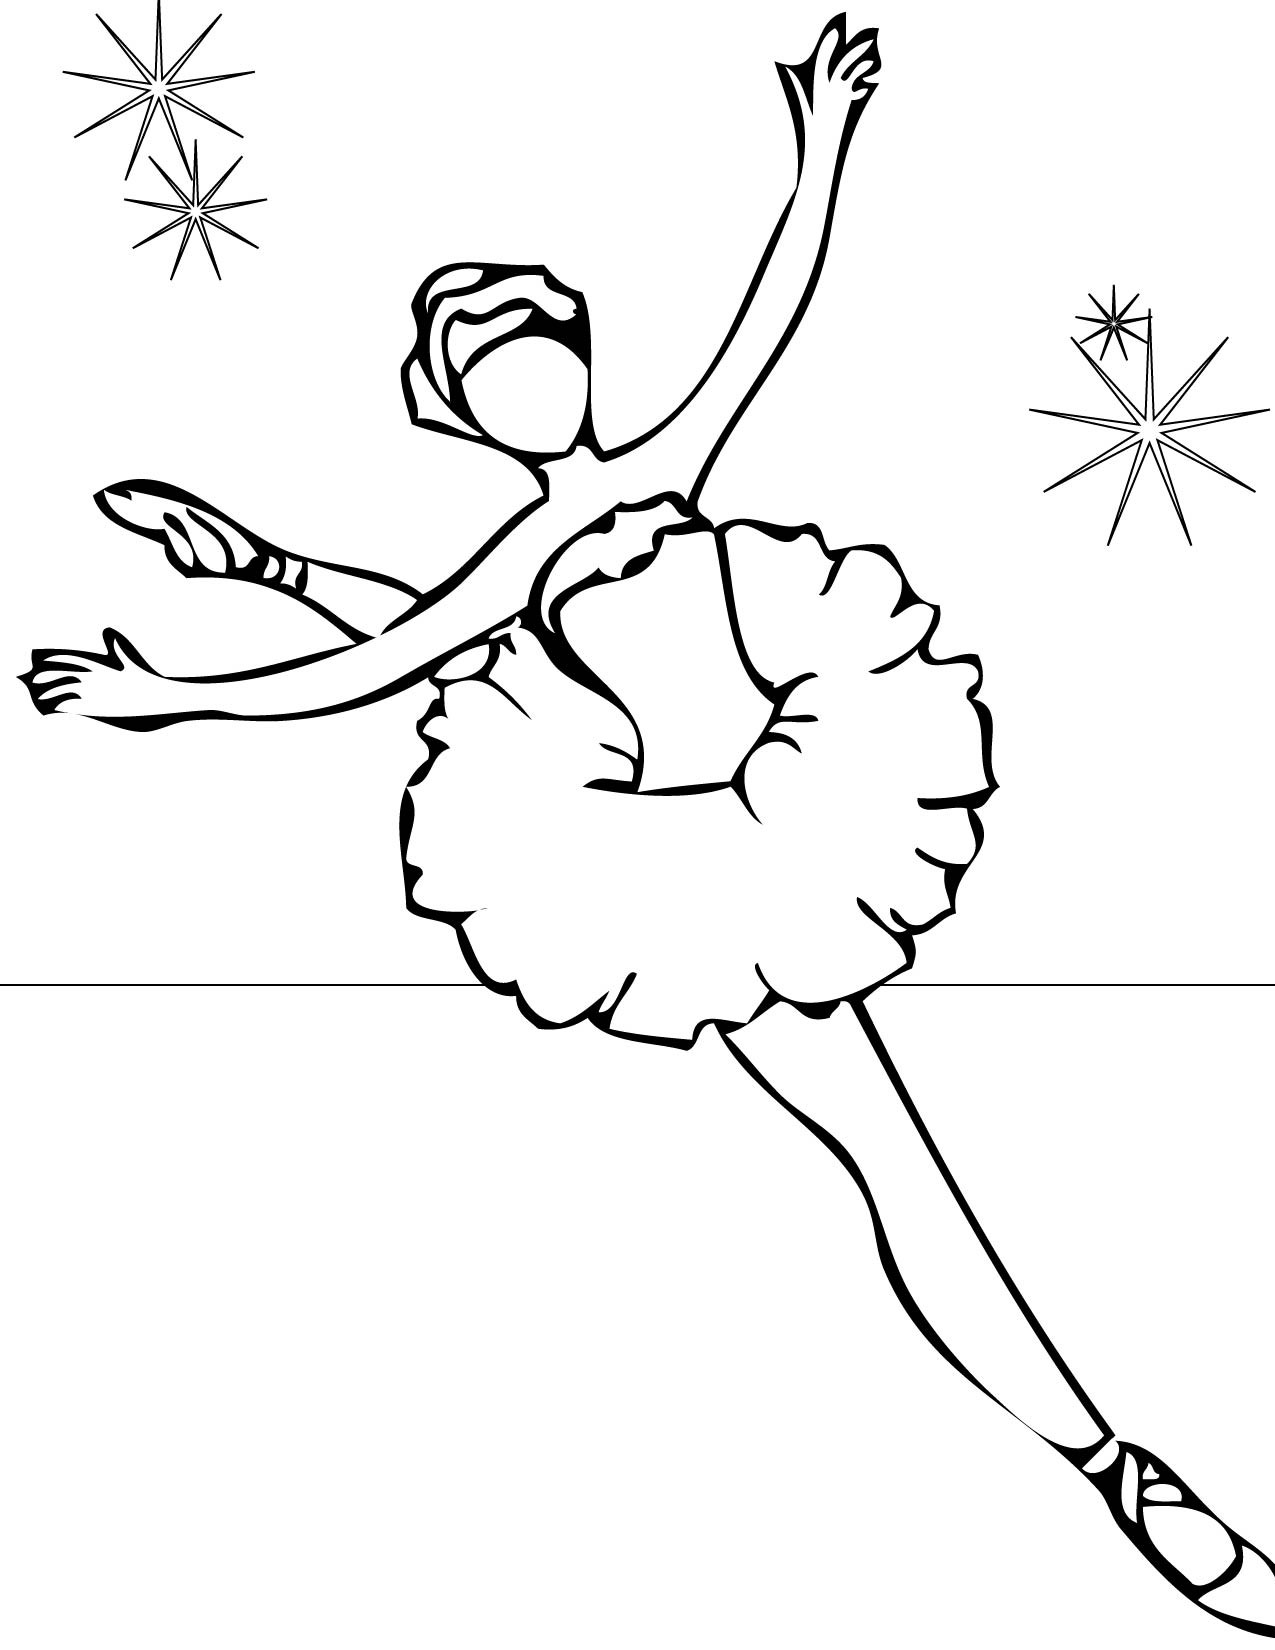 Printable Coloring Pages For Girls Dance  Ballerina Coloring Pages for childrens printable for free